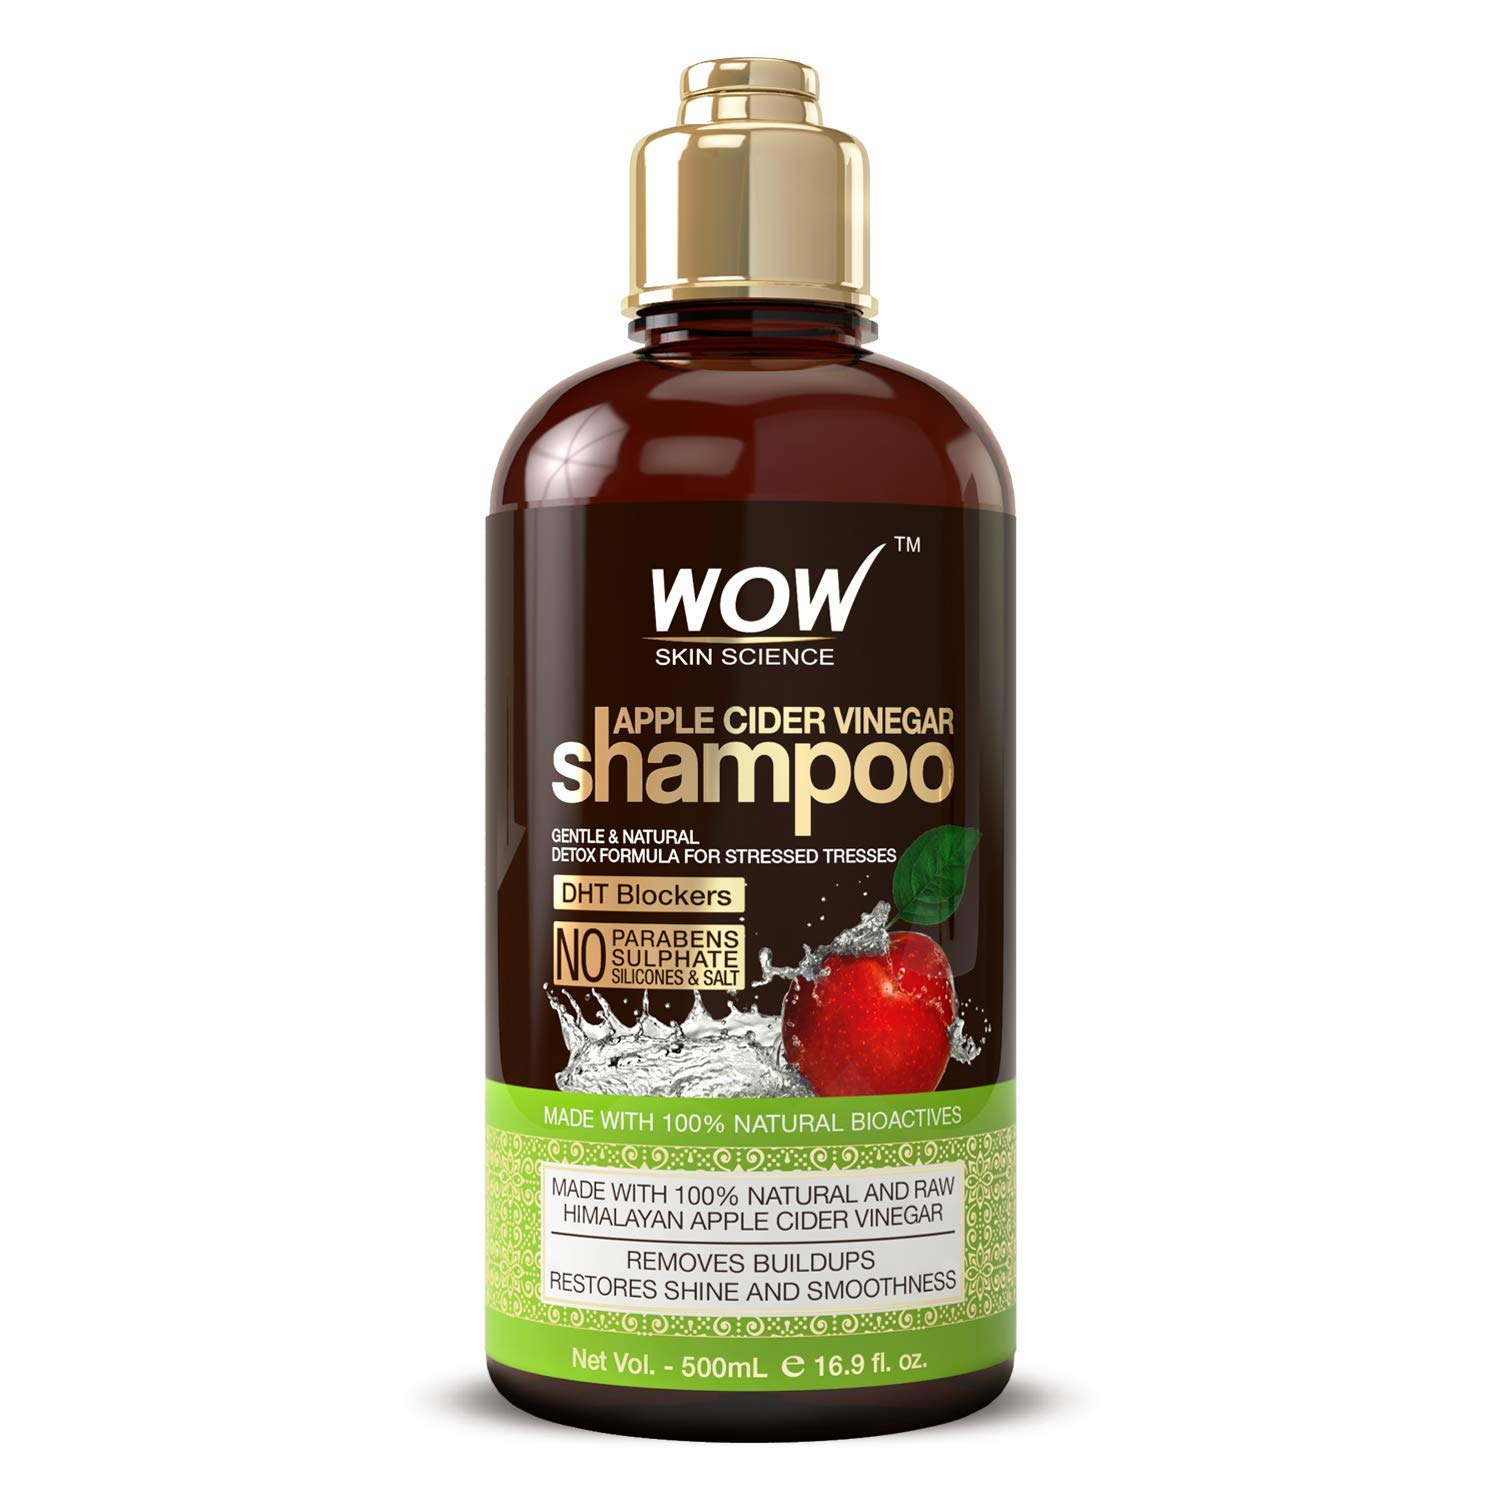 WOW Apple Cider Vinegar Shampoo - DHT Blockers For Hair Loss by BUYWOW